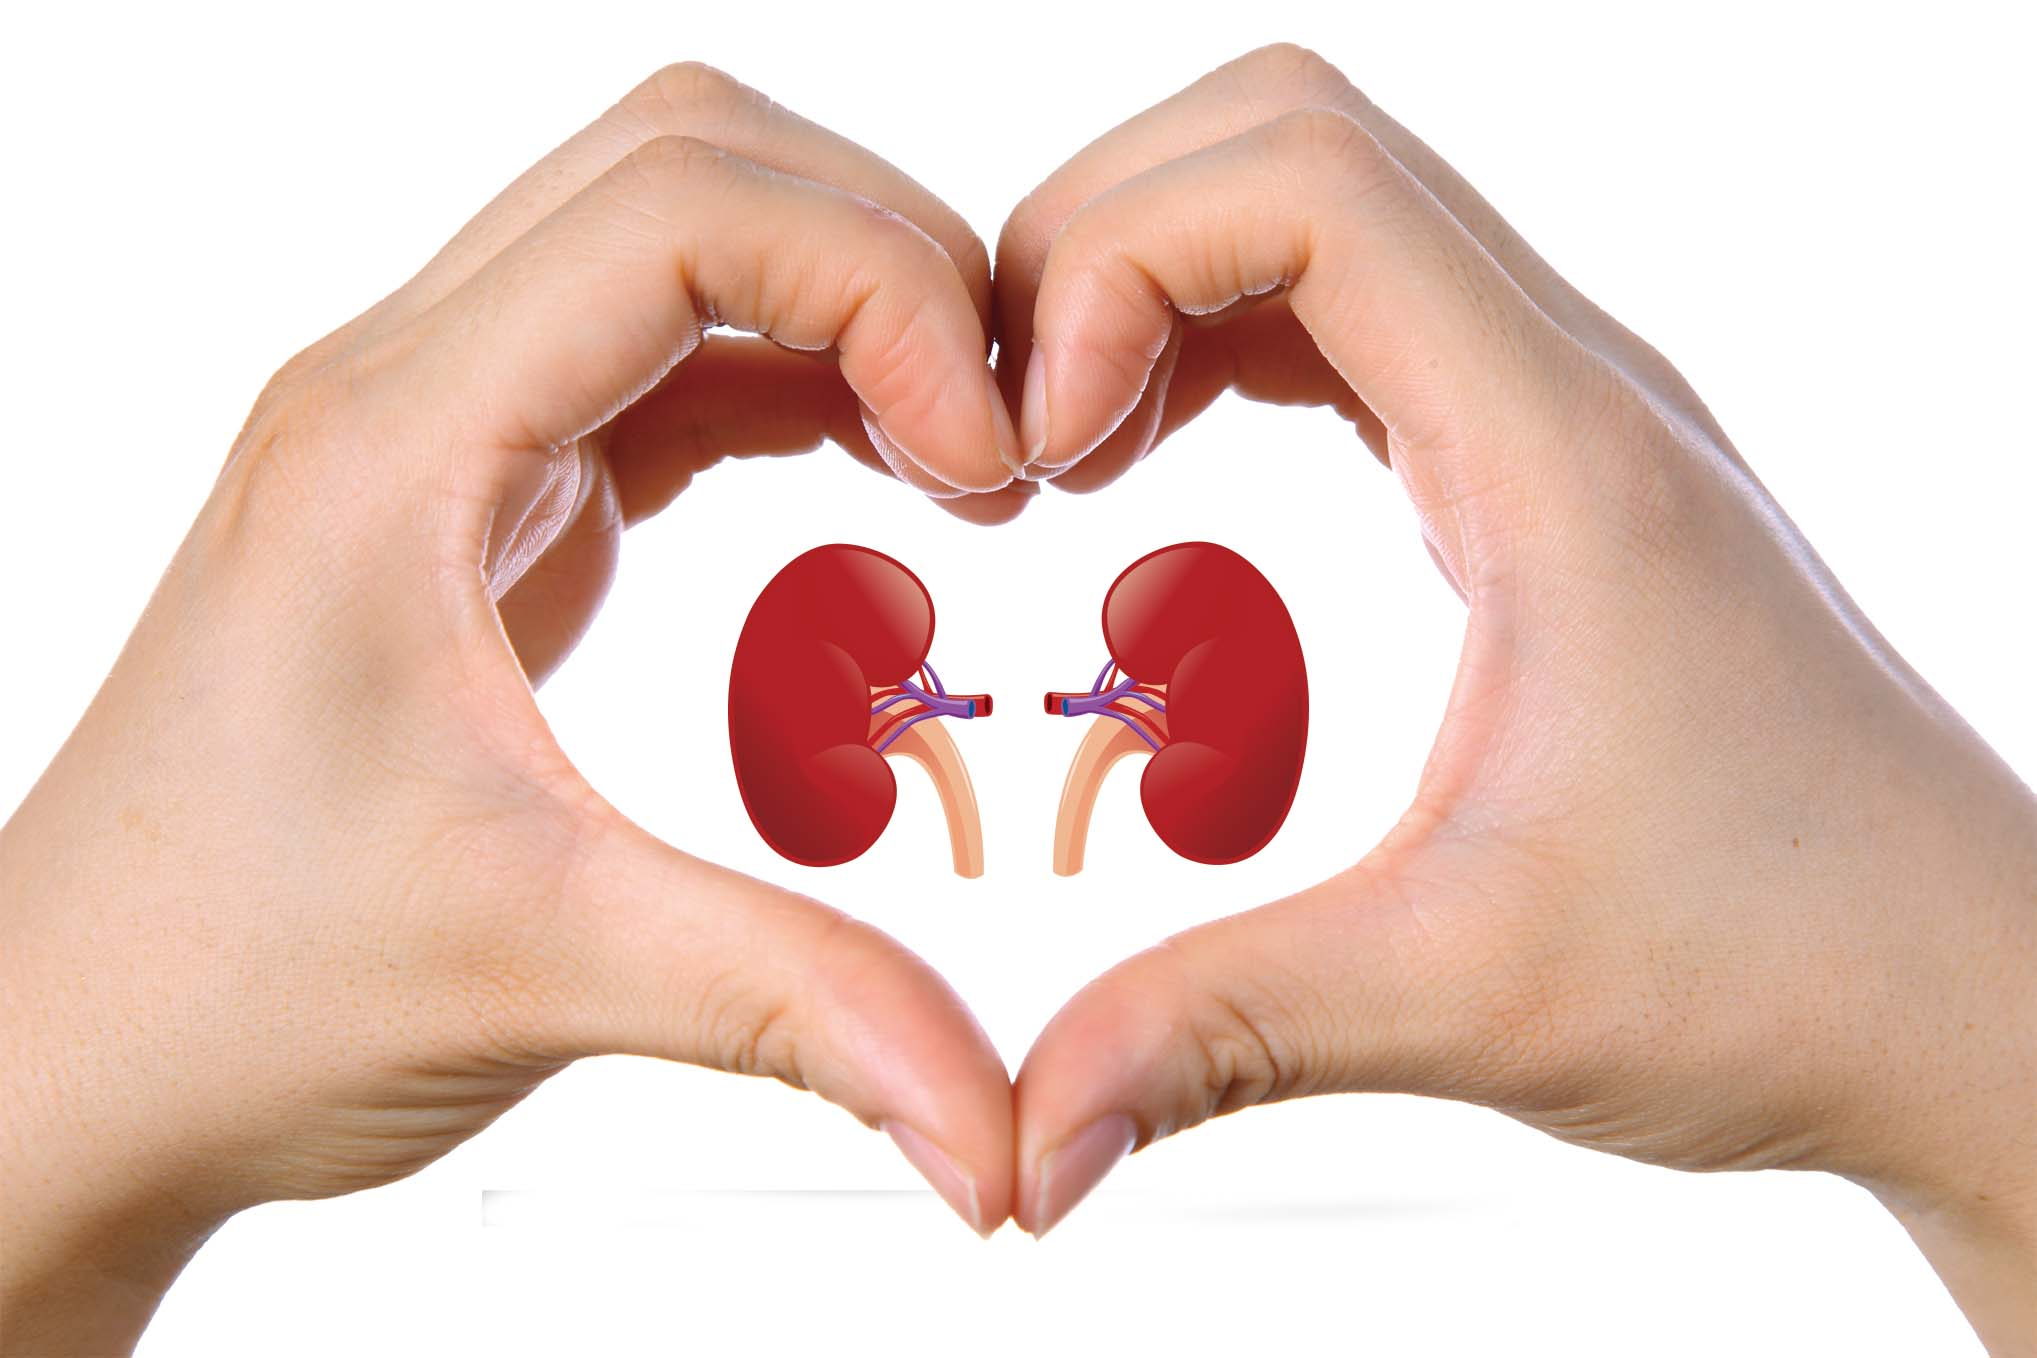 How To Take Care Of Our Kidneys